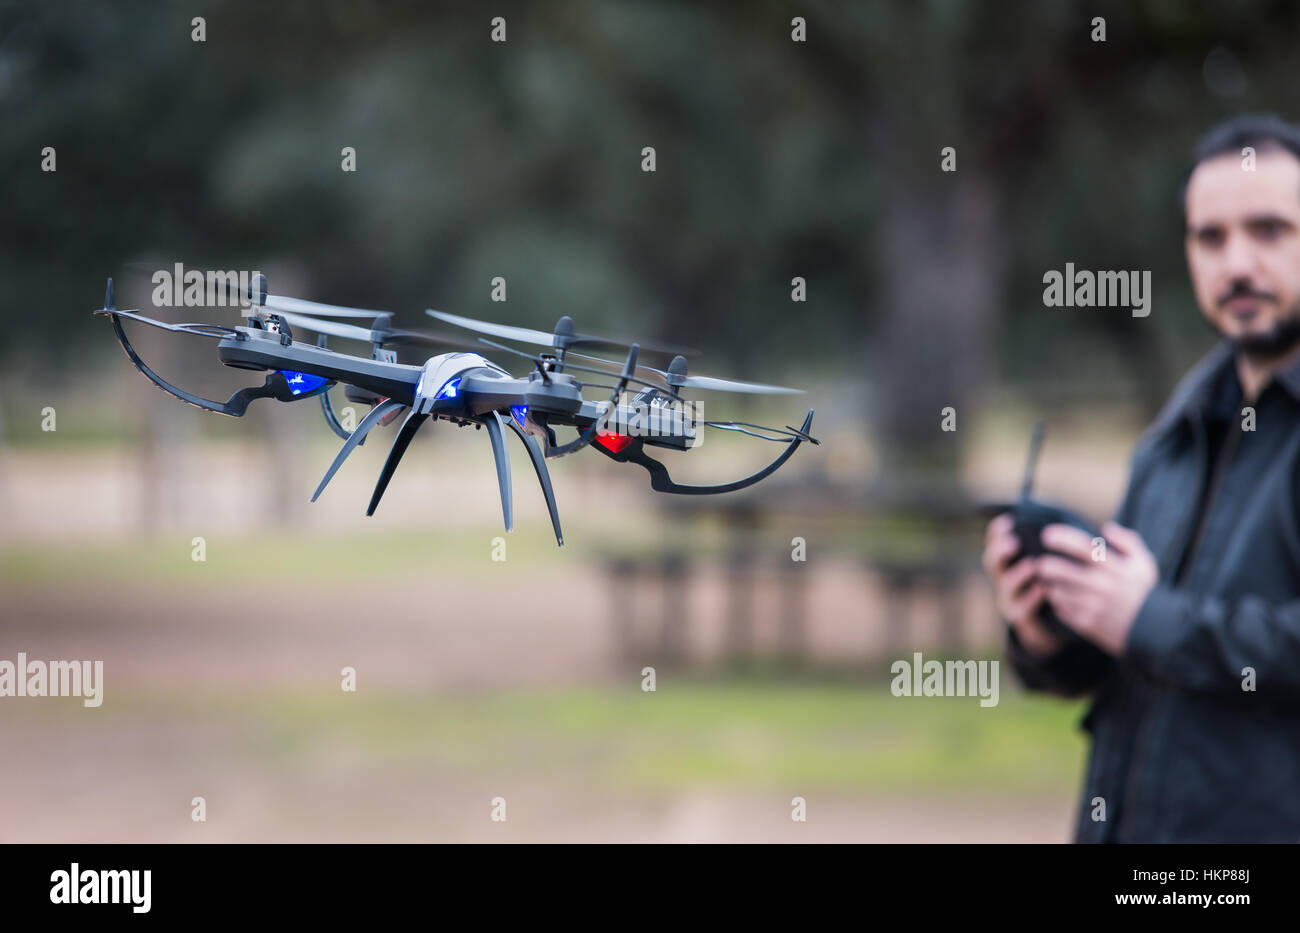 A man Operating The Drone By Remote Control In The Park - Stock Image